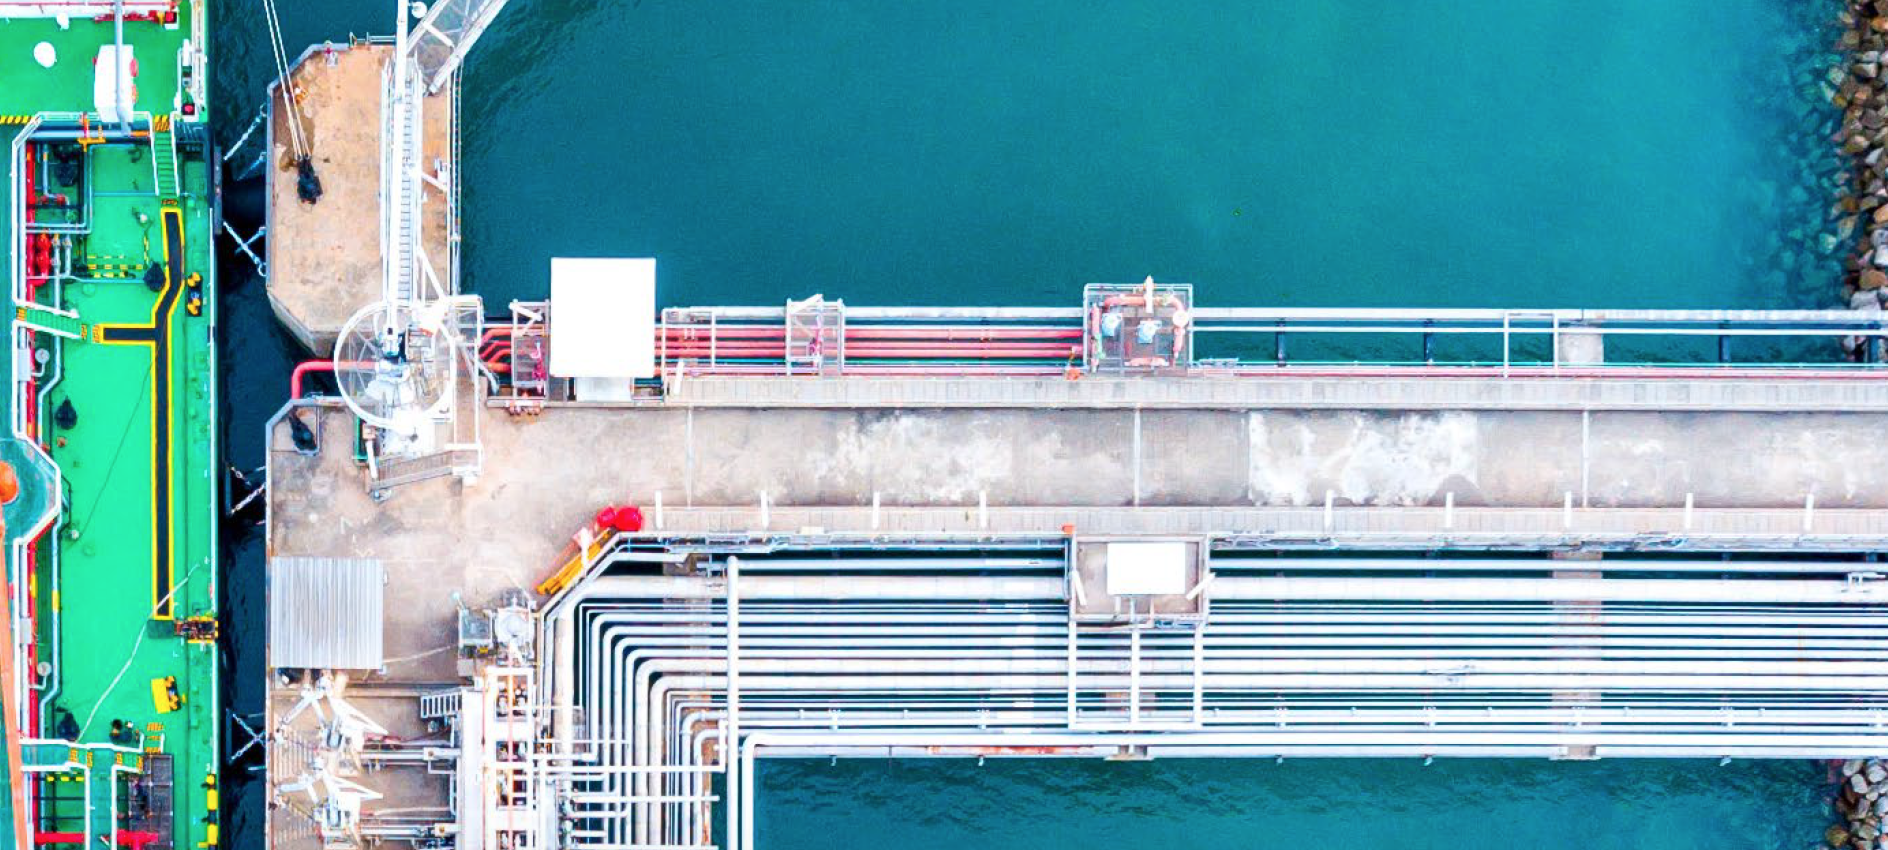 WHITEPAPER: HOW TO SUCCESSFULLY ASSESS YOUR COMMERCIAL POSITION AND BENCHMARK YOUR TANK TERMINAL AGAINST COMPETITORS